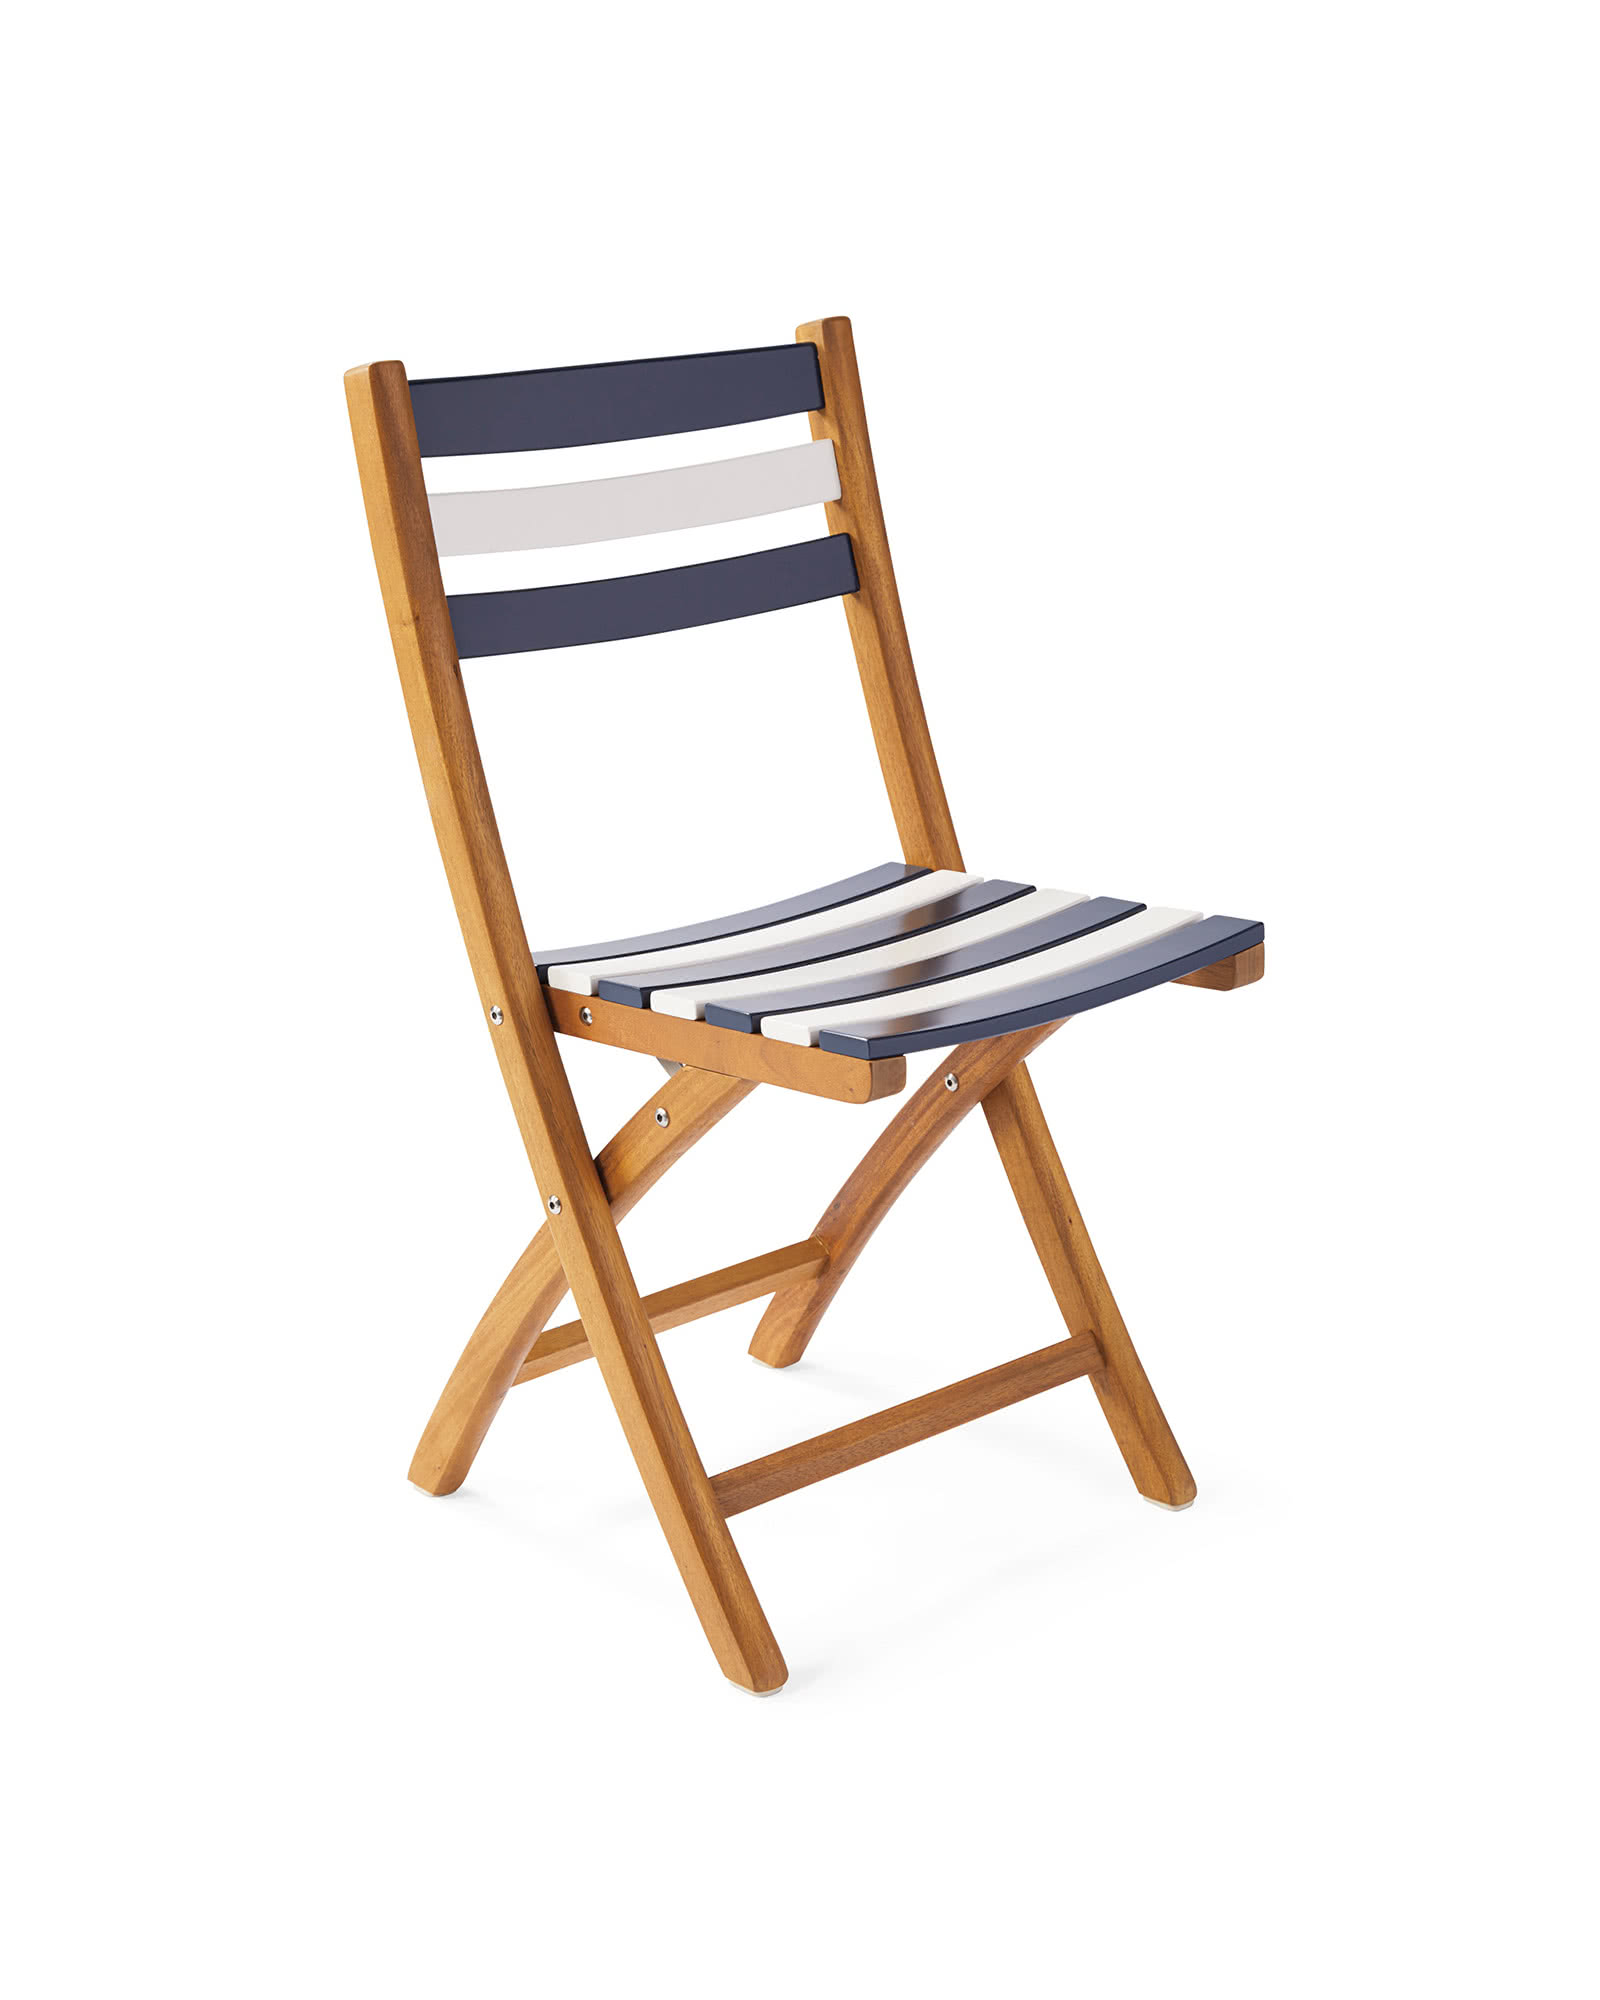 Soleil Outdoor Folding Chair,